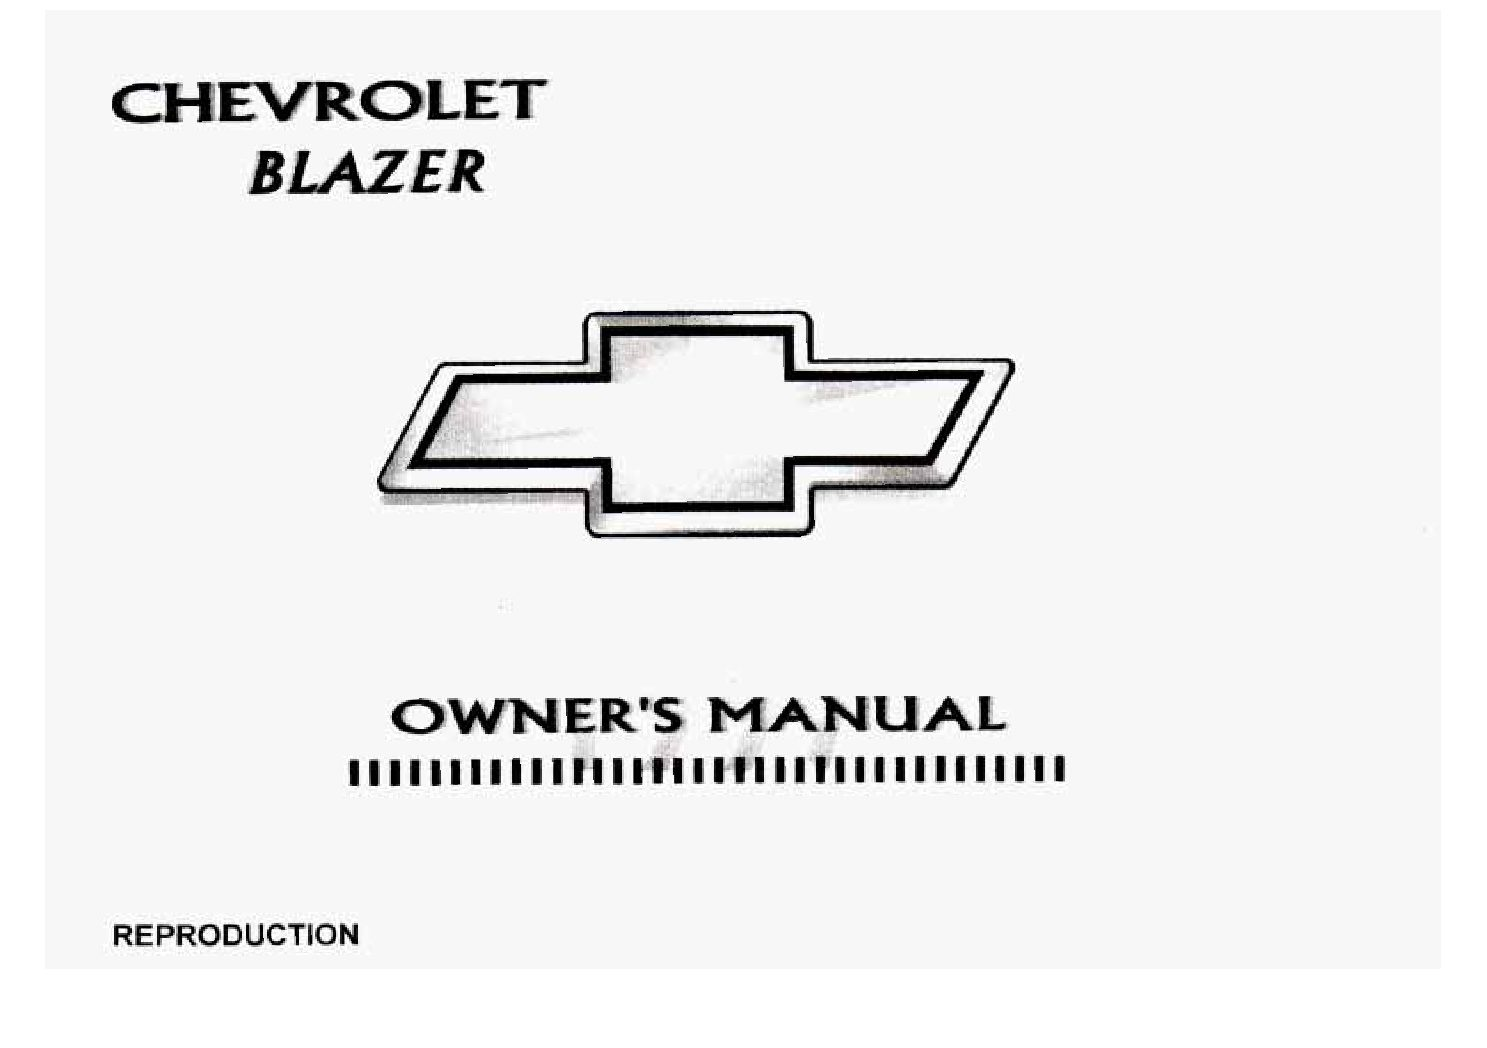 97 Chevy Blazer Owners Manual